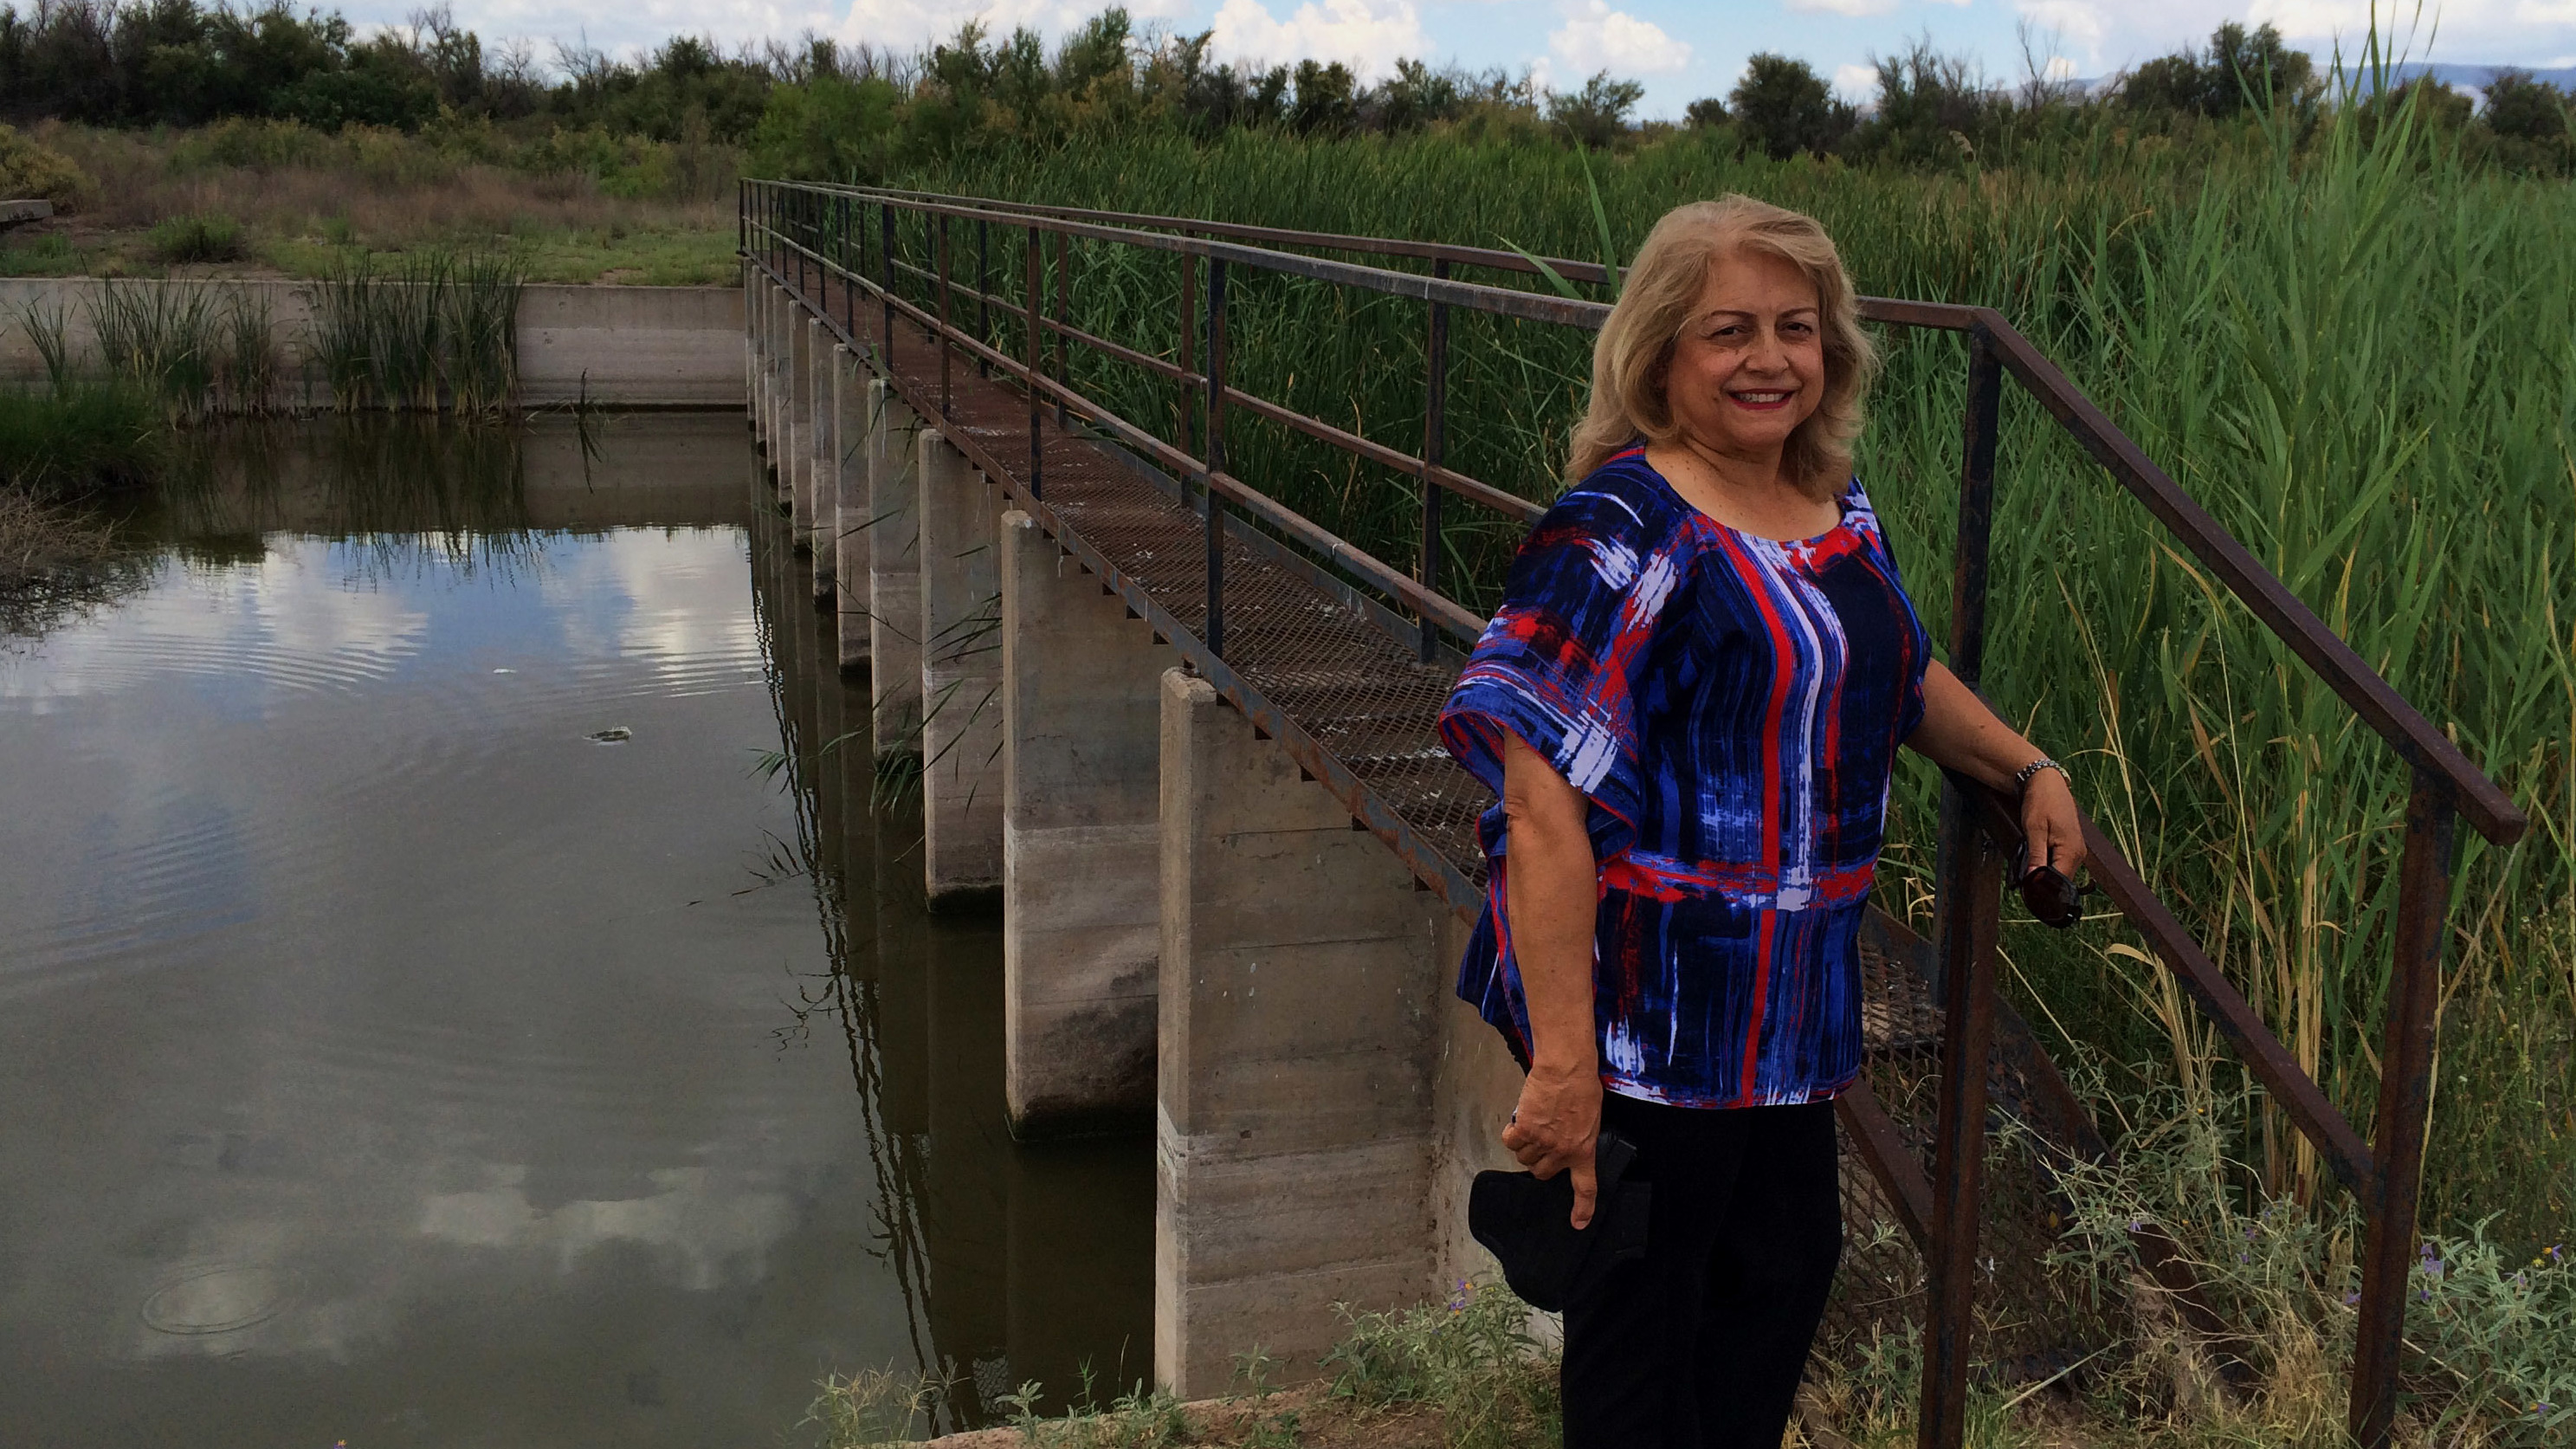 Lupe Dempsey, a retired federal agent, brings her Glock 9mm with her when she goes down to the Rio Grande. She believes the border is too wide open, evidenced by this unguarded metal walkway across the river in far West Texas. (John Burnett, NPR)